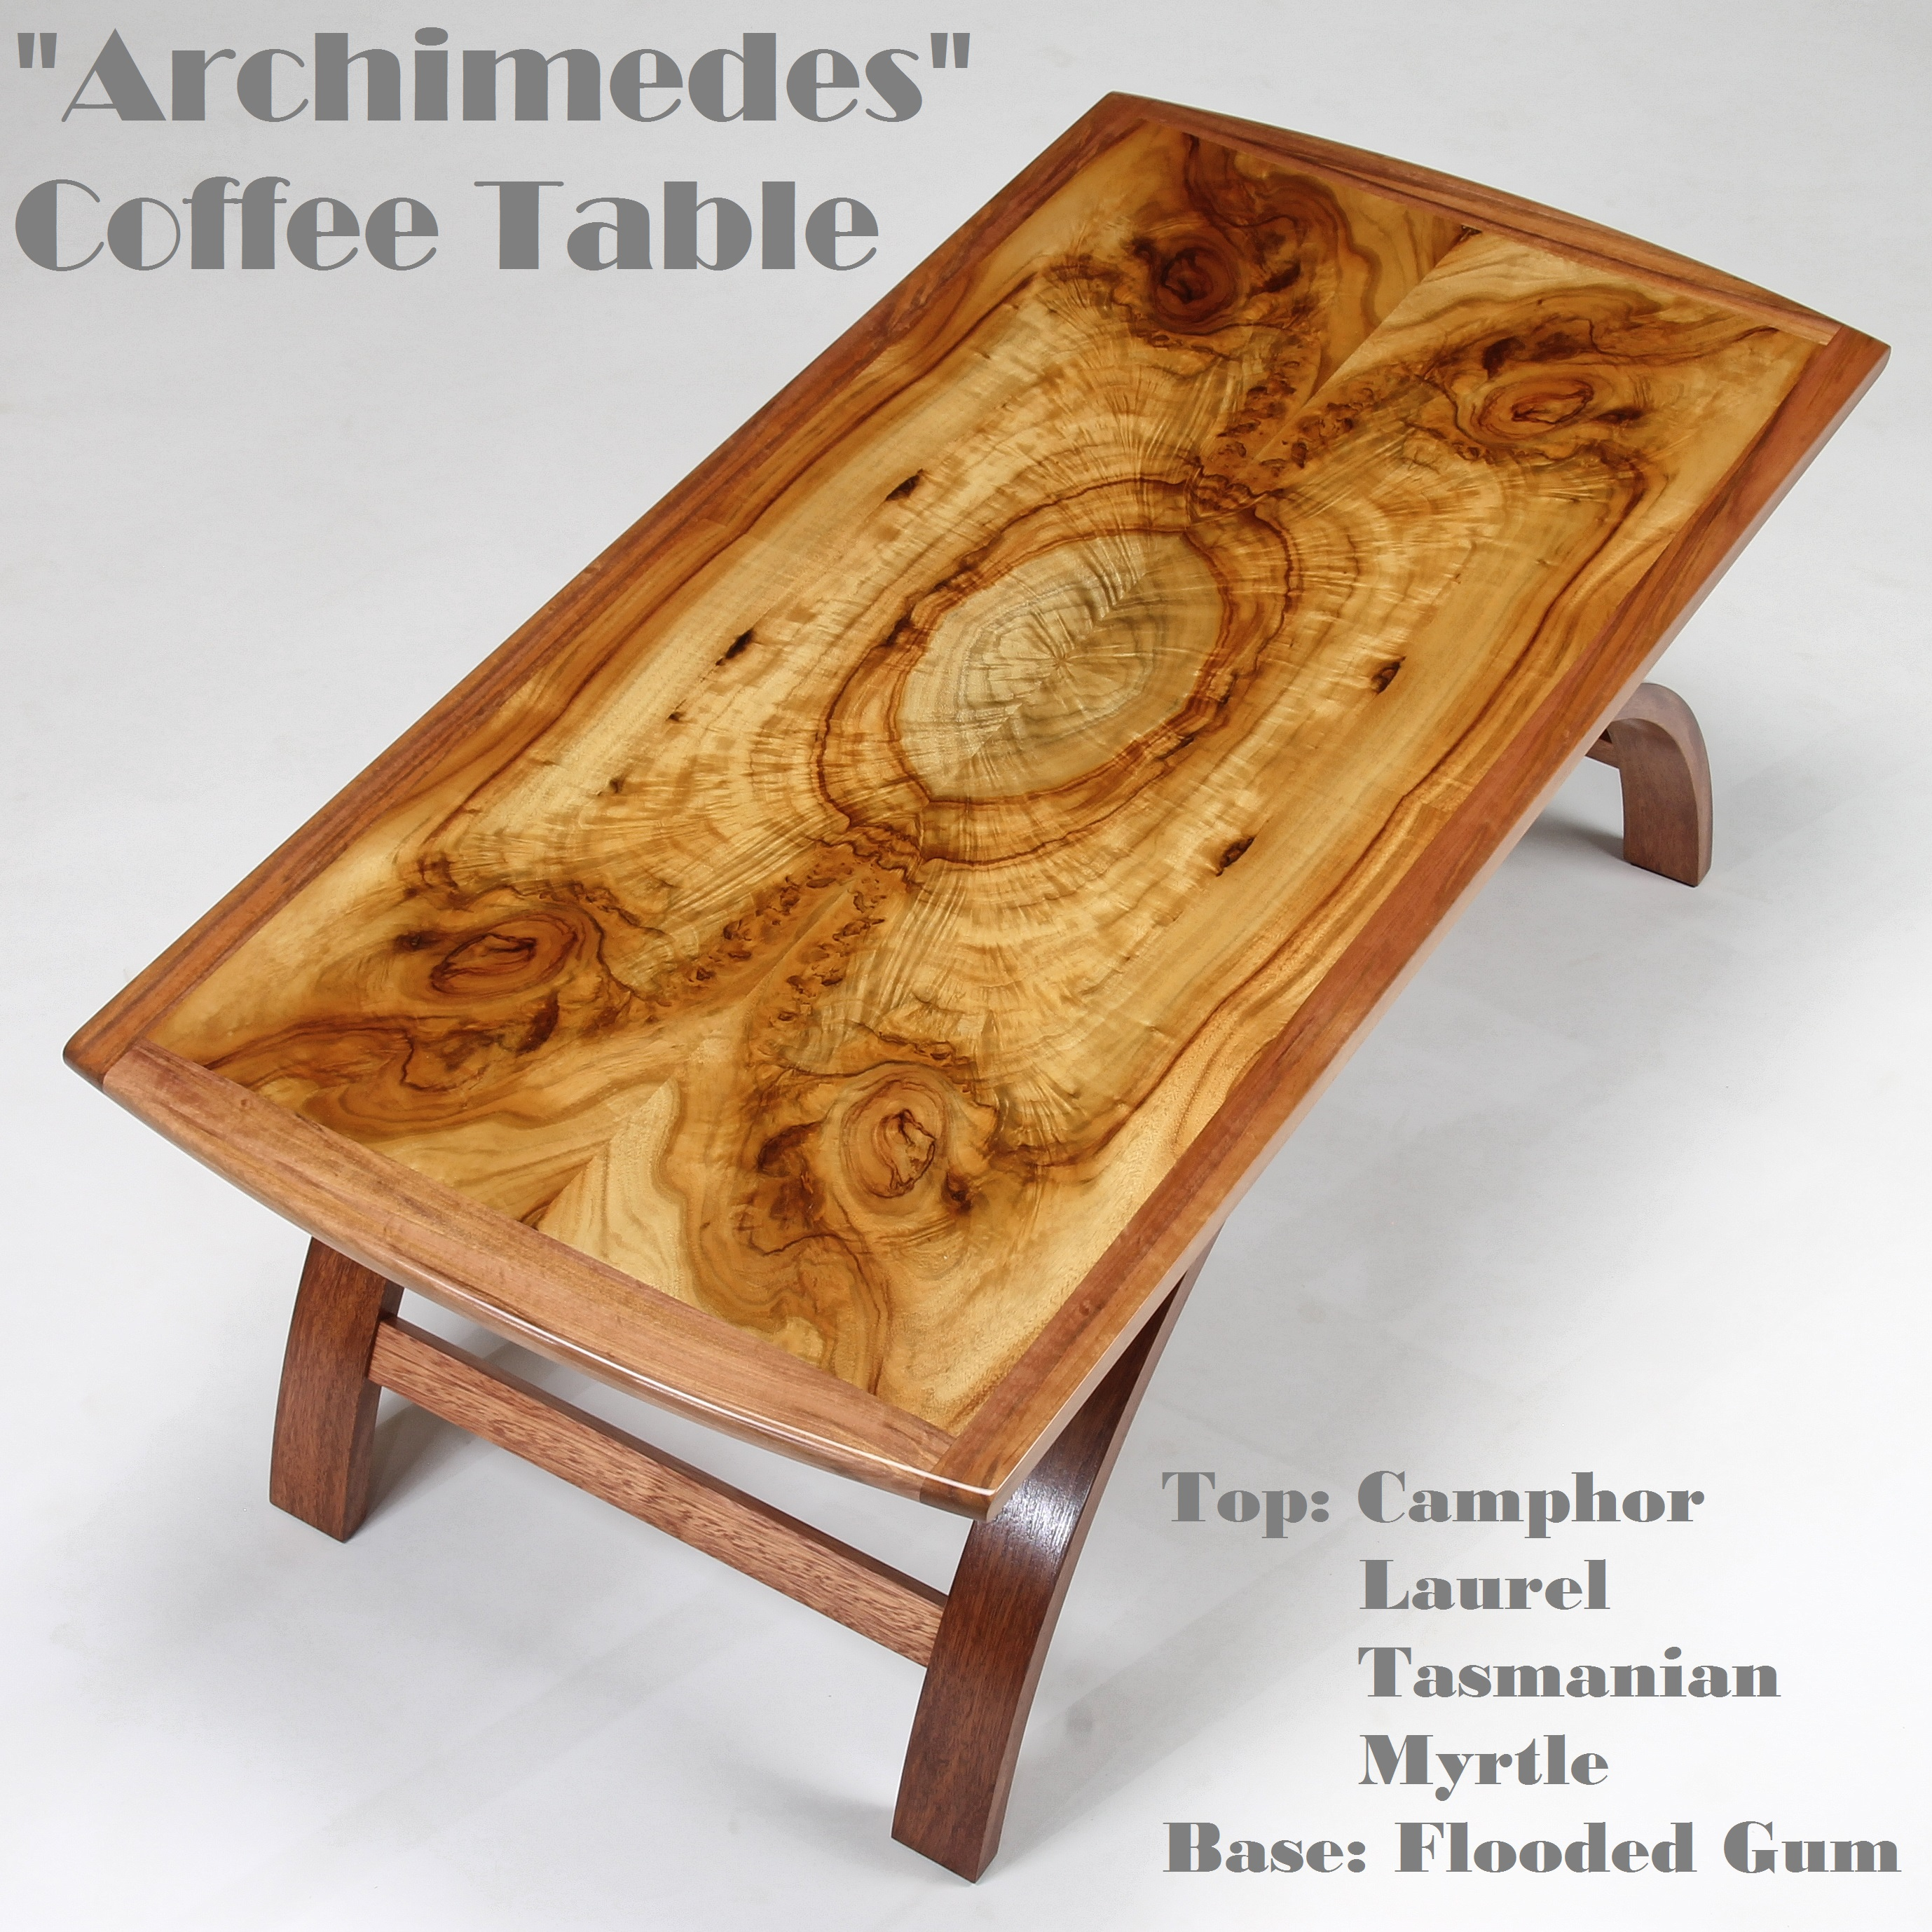 Archimedes Coffee Table 7 Website